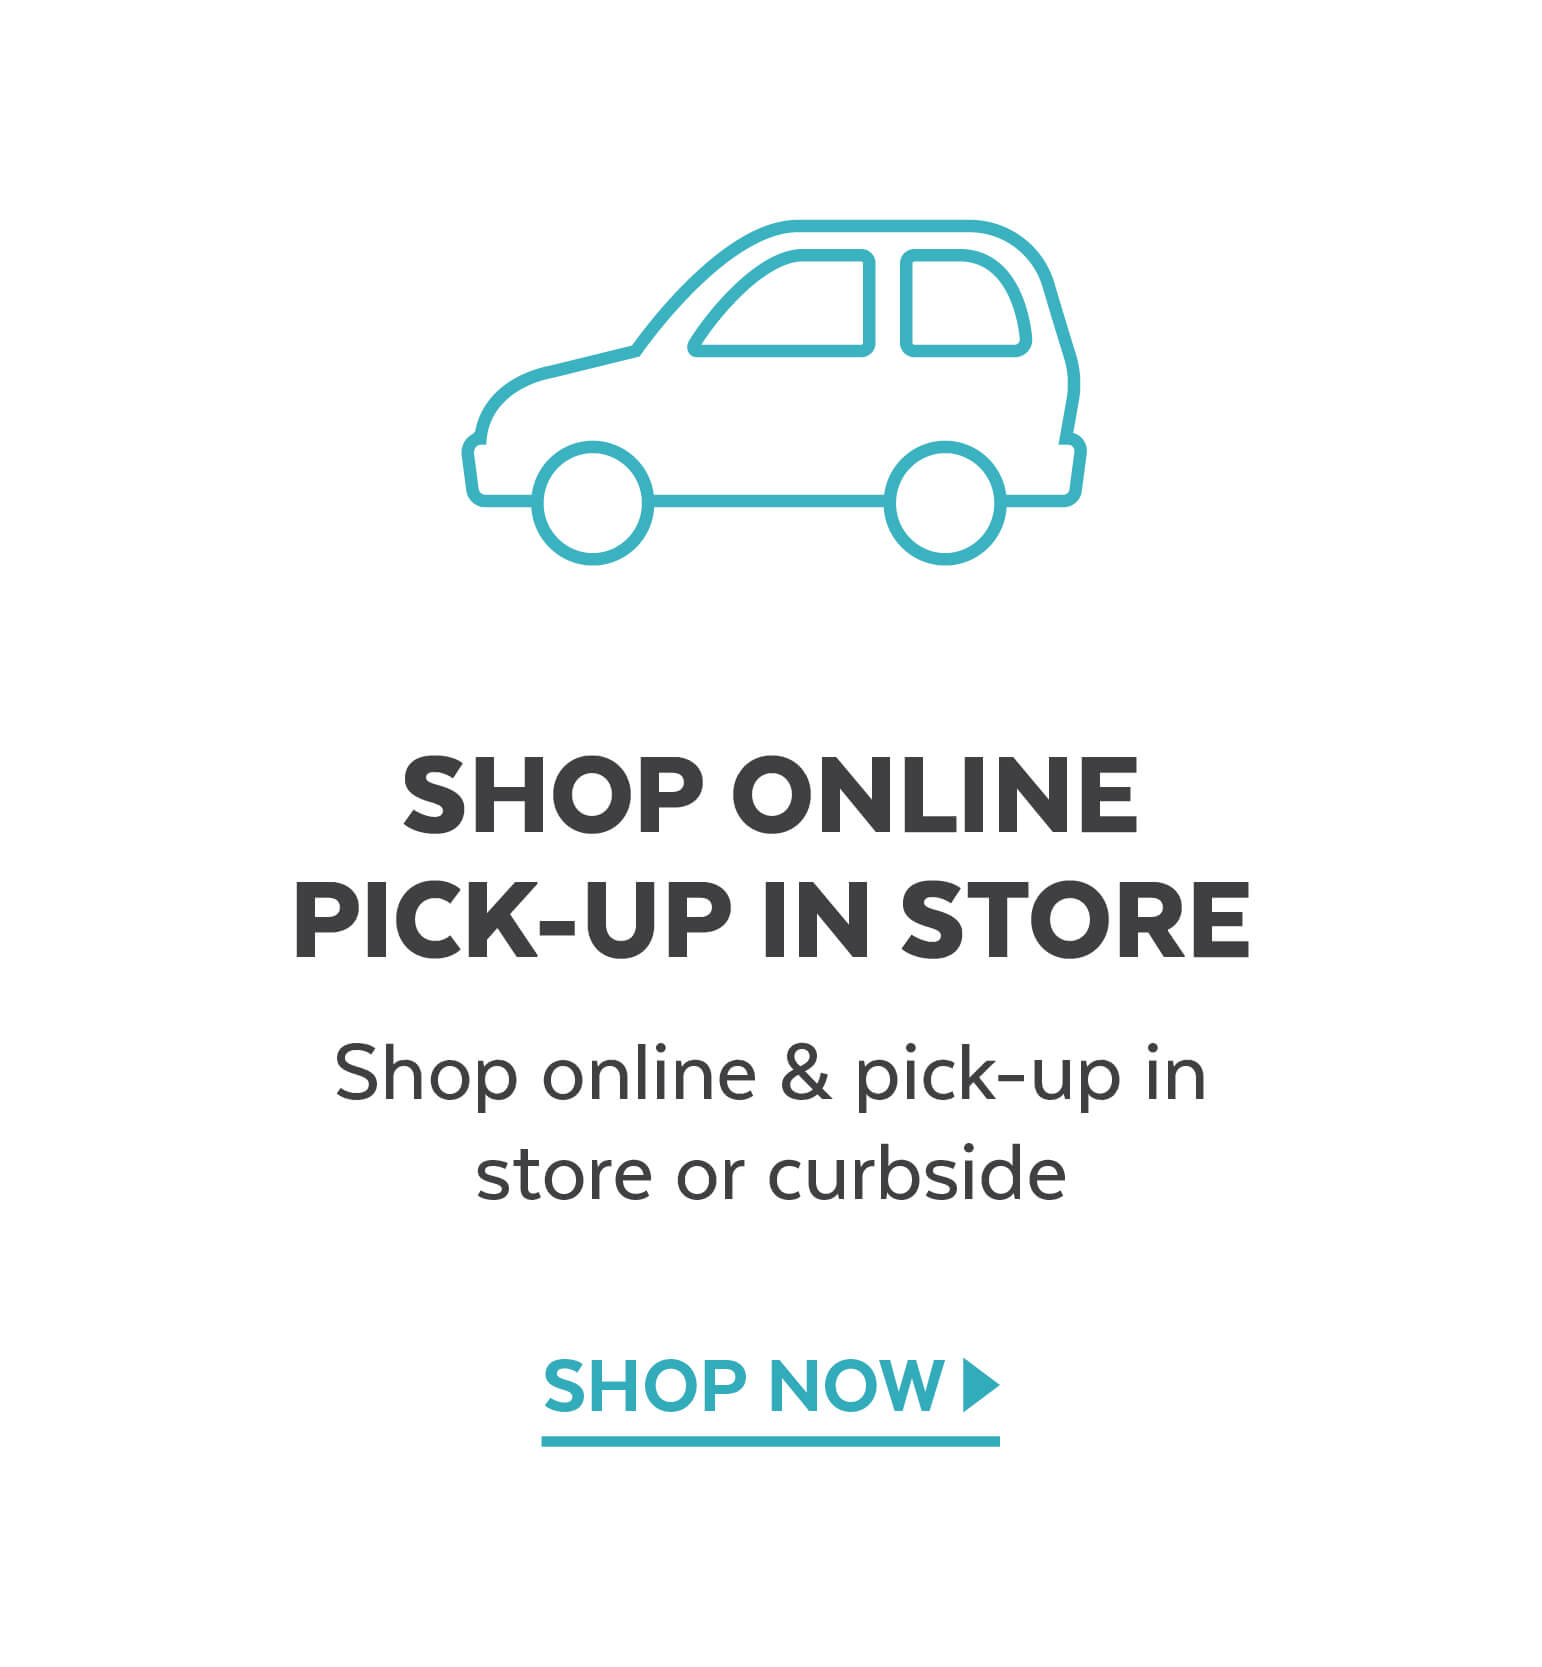 Shop online and pick-up